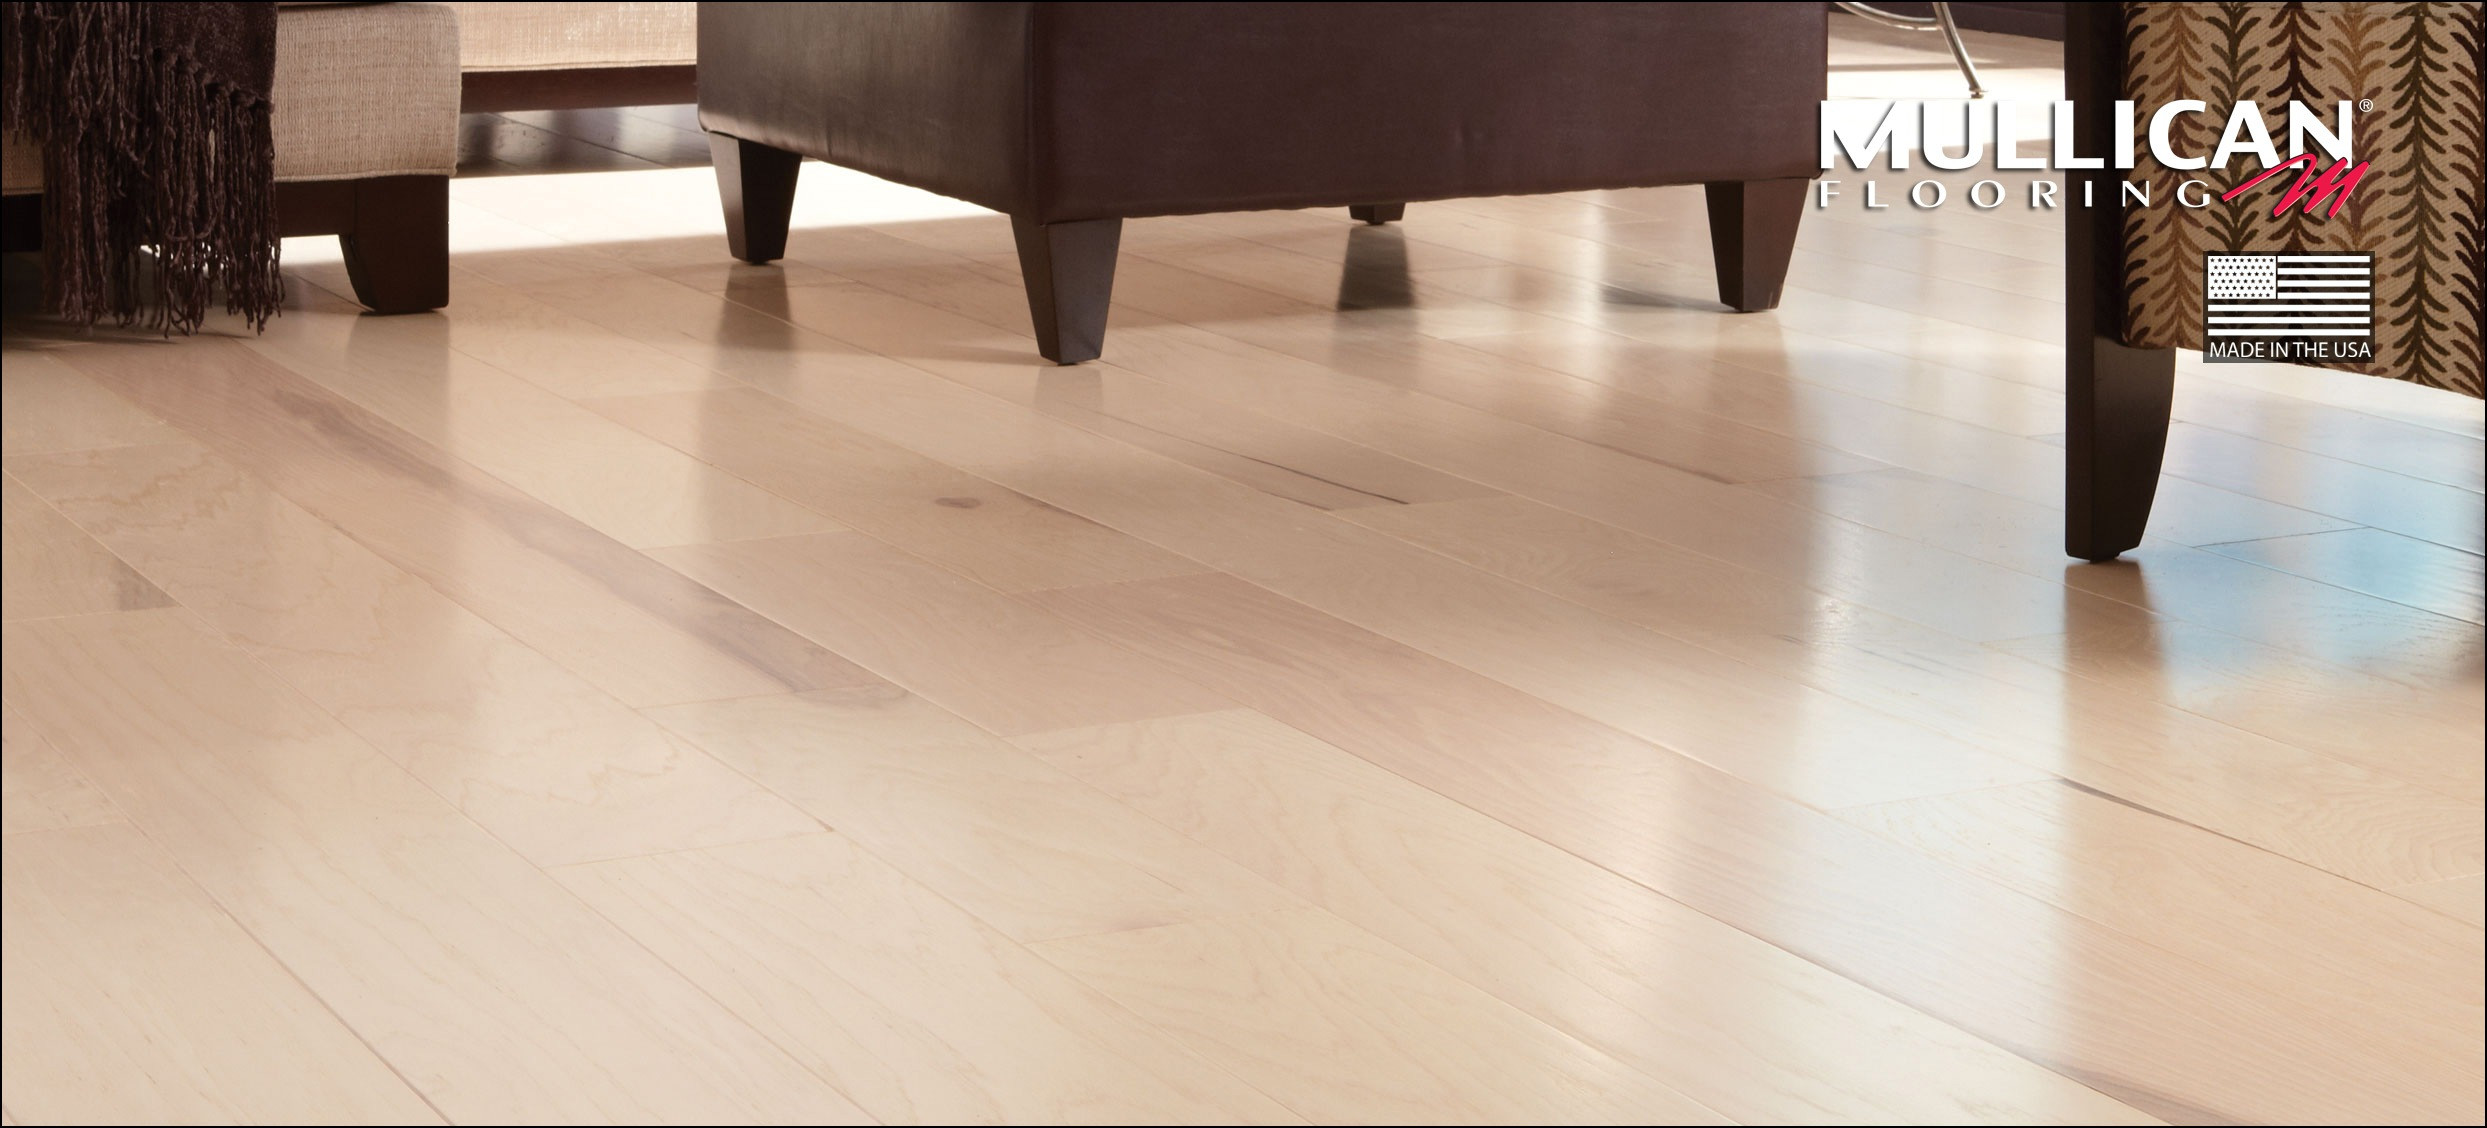 Hardwood Floor Refinishing atlanta Of Hardwood Flooring Suppliers France Flooring Ideas Pertaining to Hardwood Flooring Installation San Diego Mullican Flooring Home Of Hardwood Flooring Installation San Diego